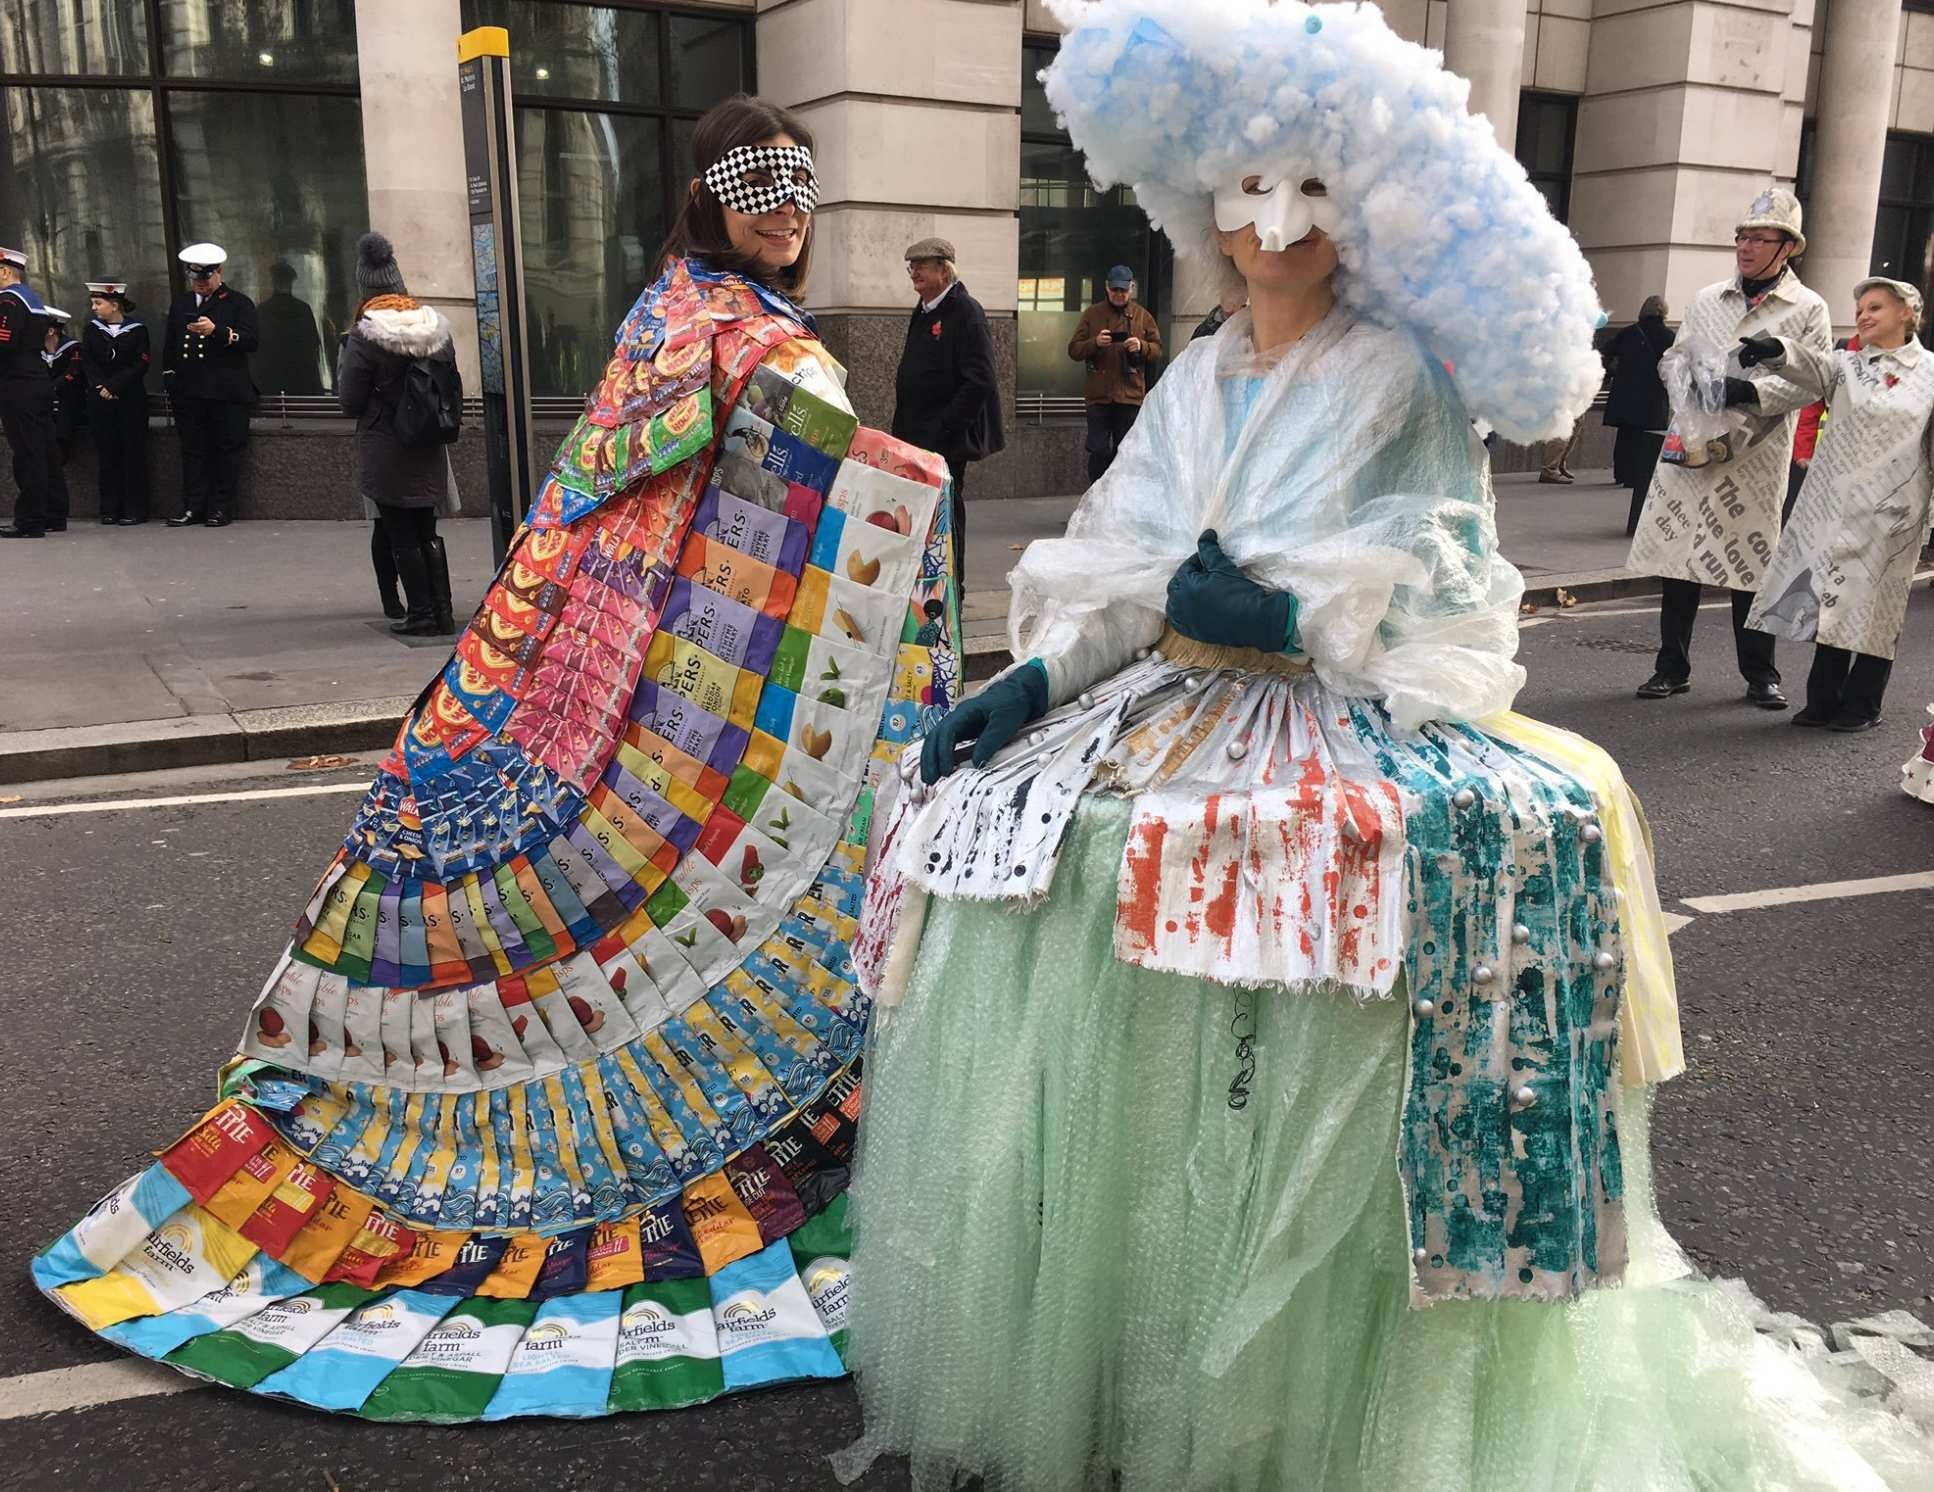 Two people wear cloaks made of trash. Left: crisp packets. Right: discarded plastics including bubble wrap and polystyrene